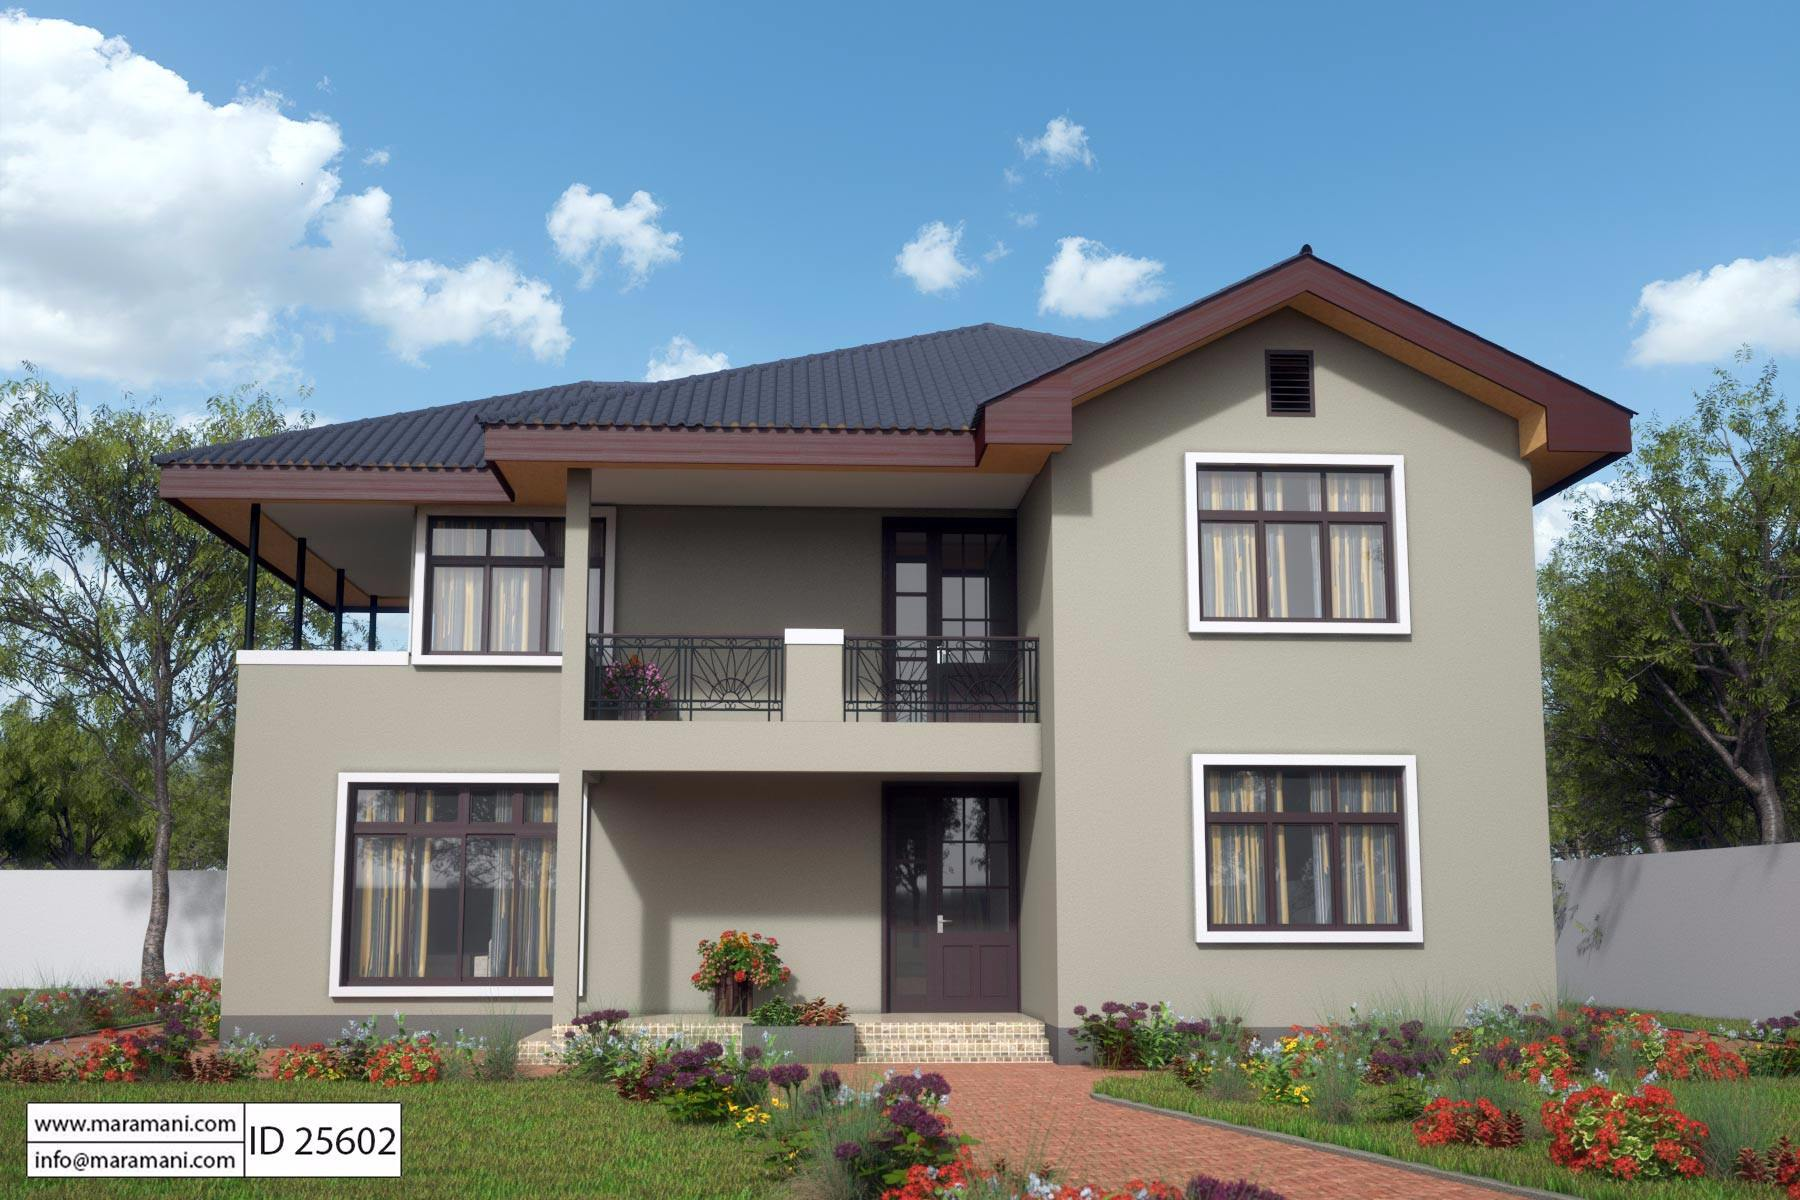 5 bedroom house design id 25602 house plans by maramani for 5 bedrooms